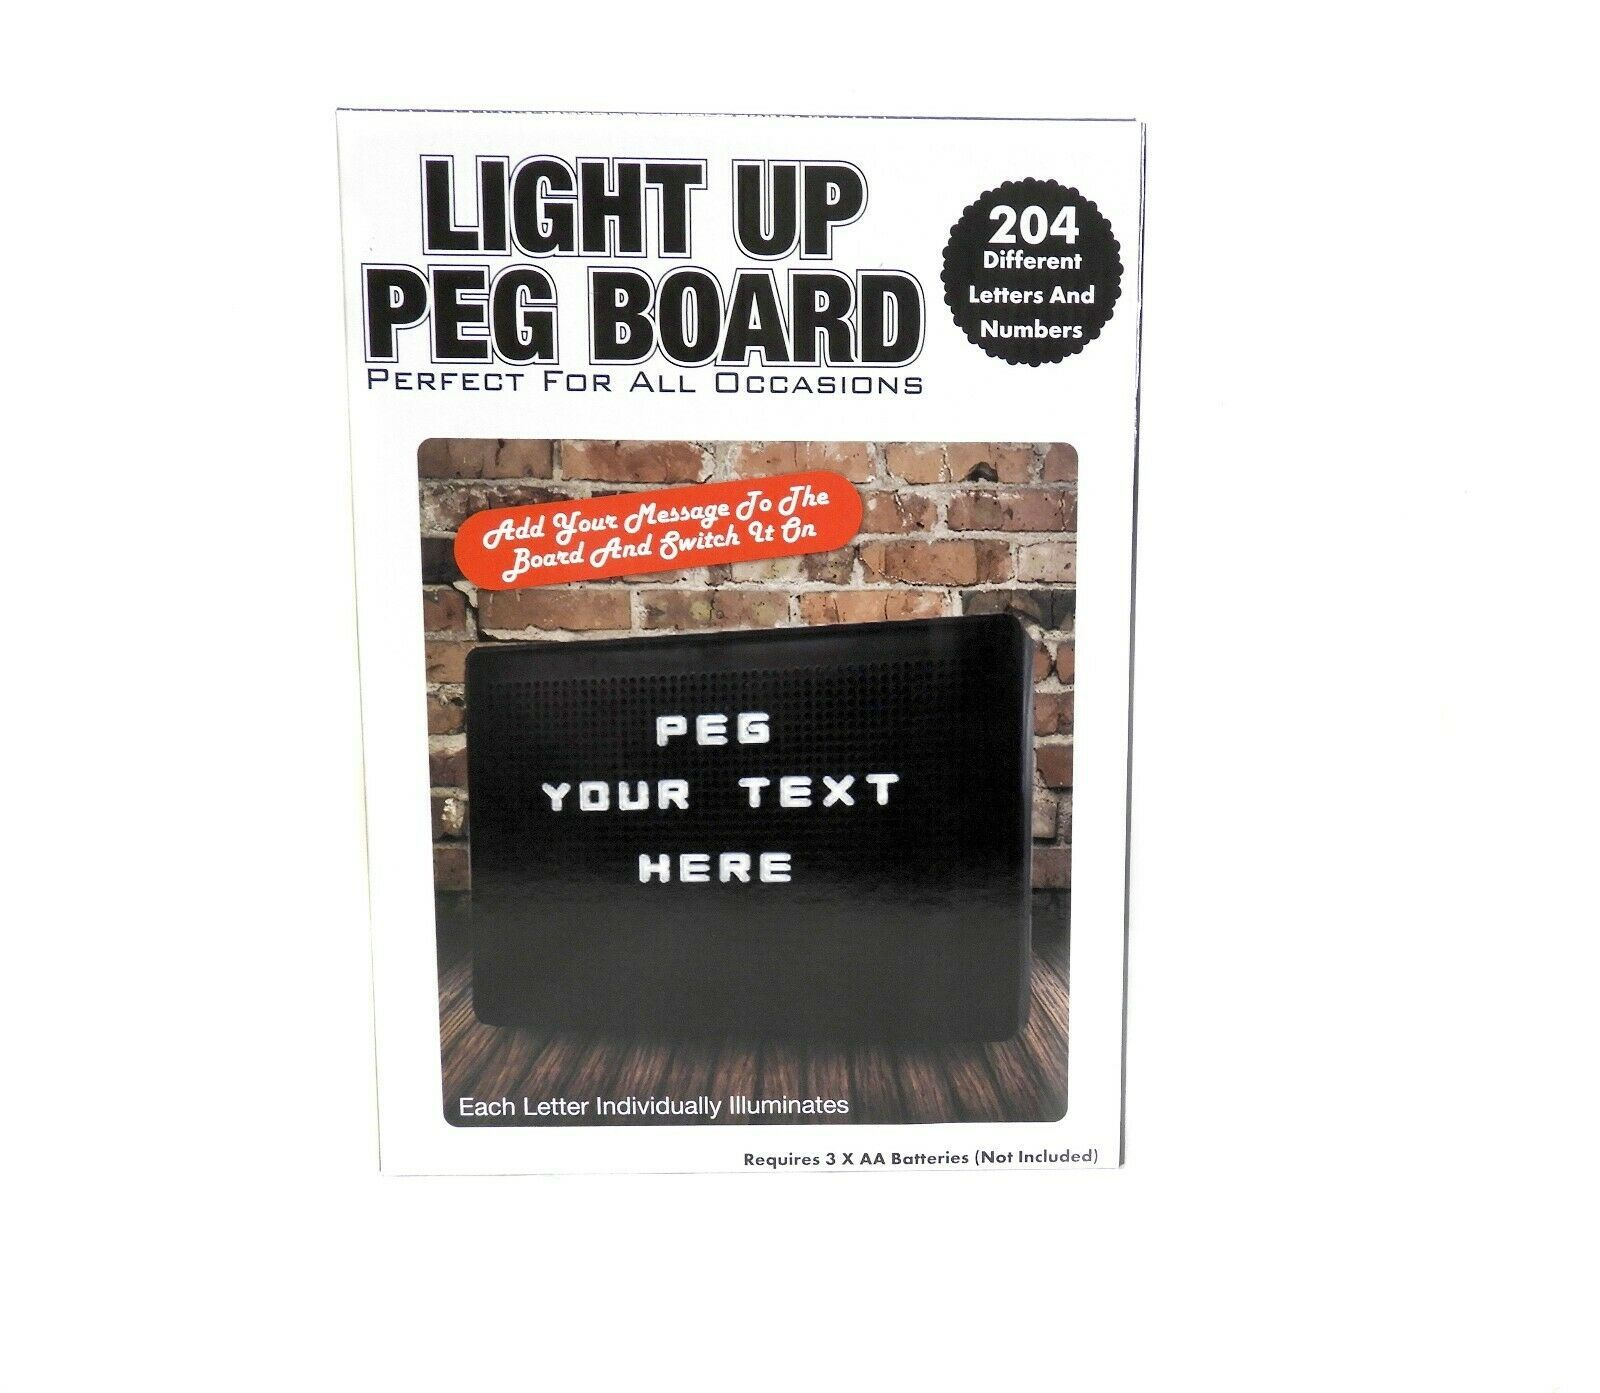 All Occasion Light Up Sign Peg Board Includes 204 Different Letters and Numbers - $14.84